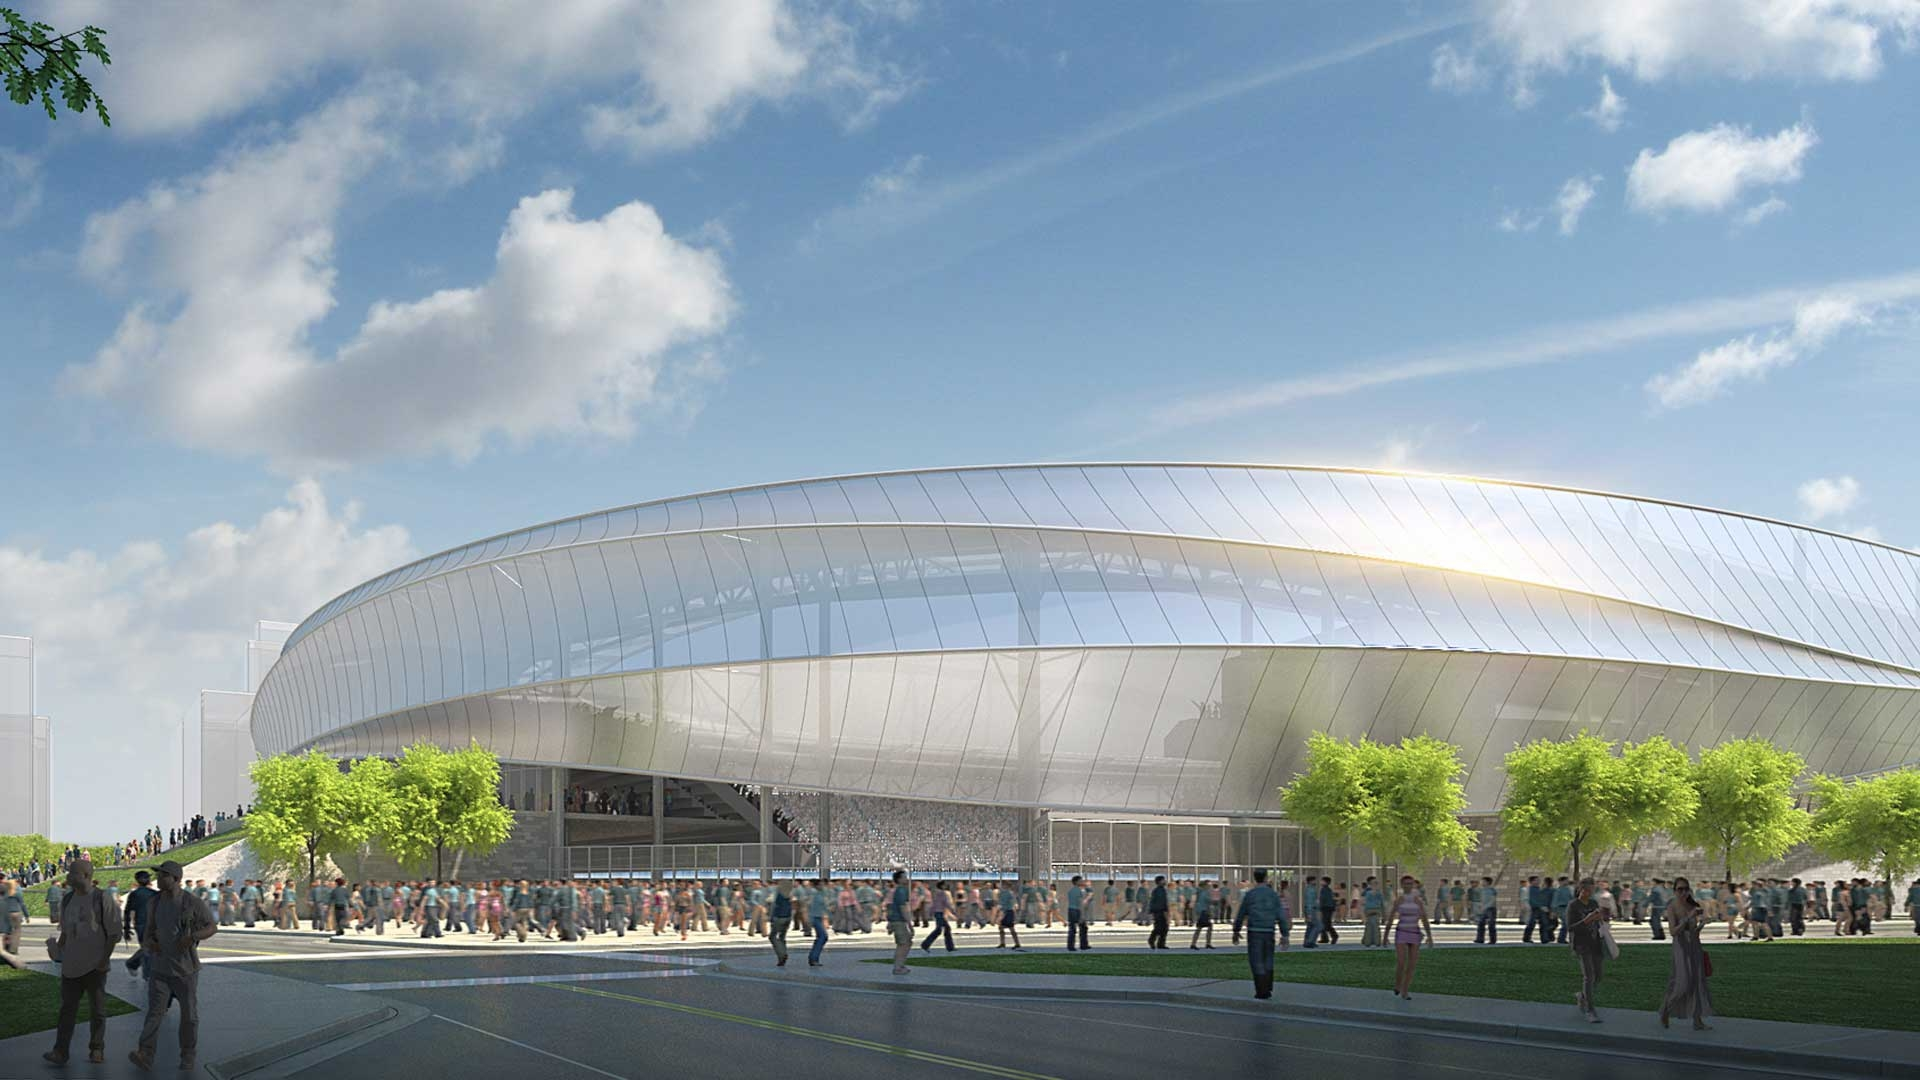 MN United FC of the M LS will play in their new Saint Paul Stadium in 2019. (photo from Populous and MN United FC)